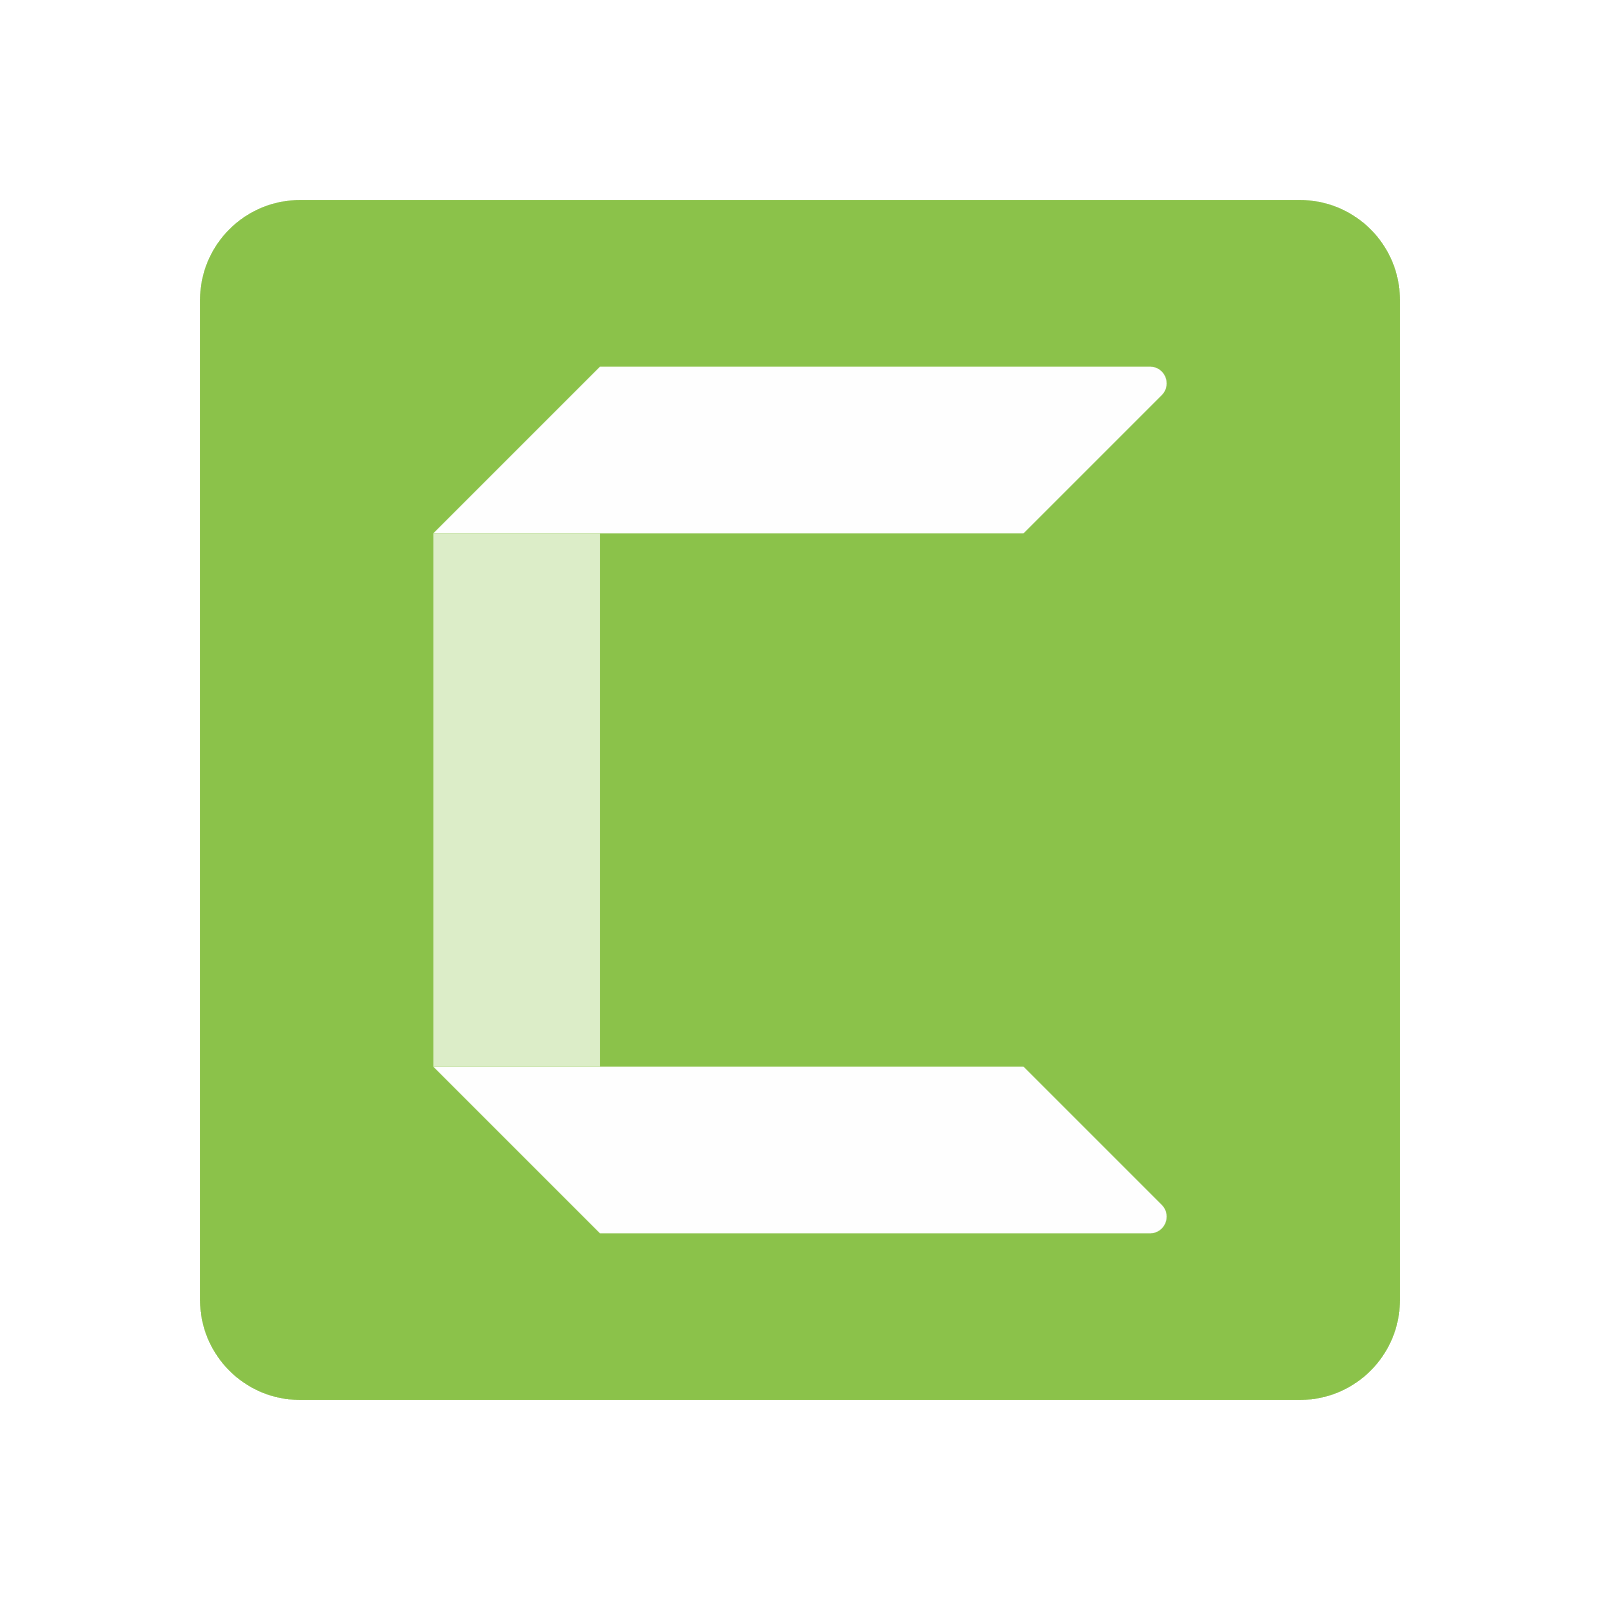 camtasia studio wordpress plugin